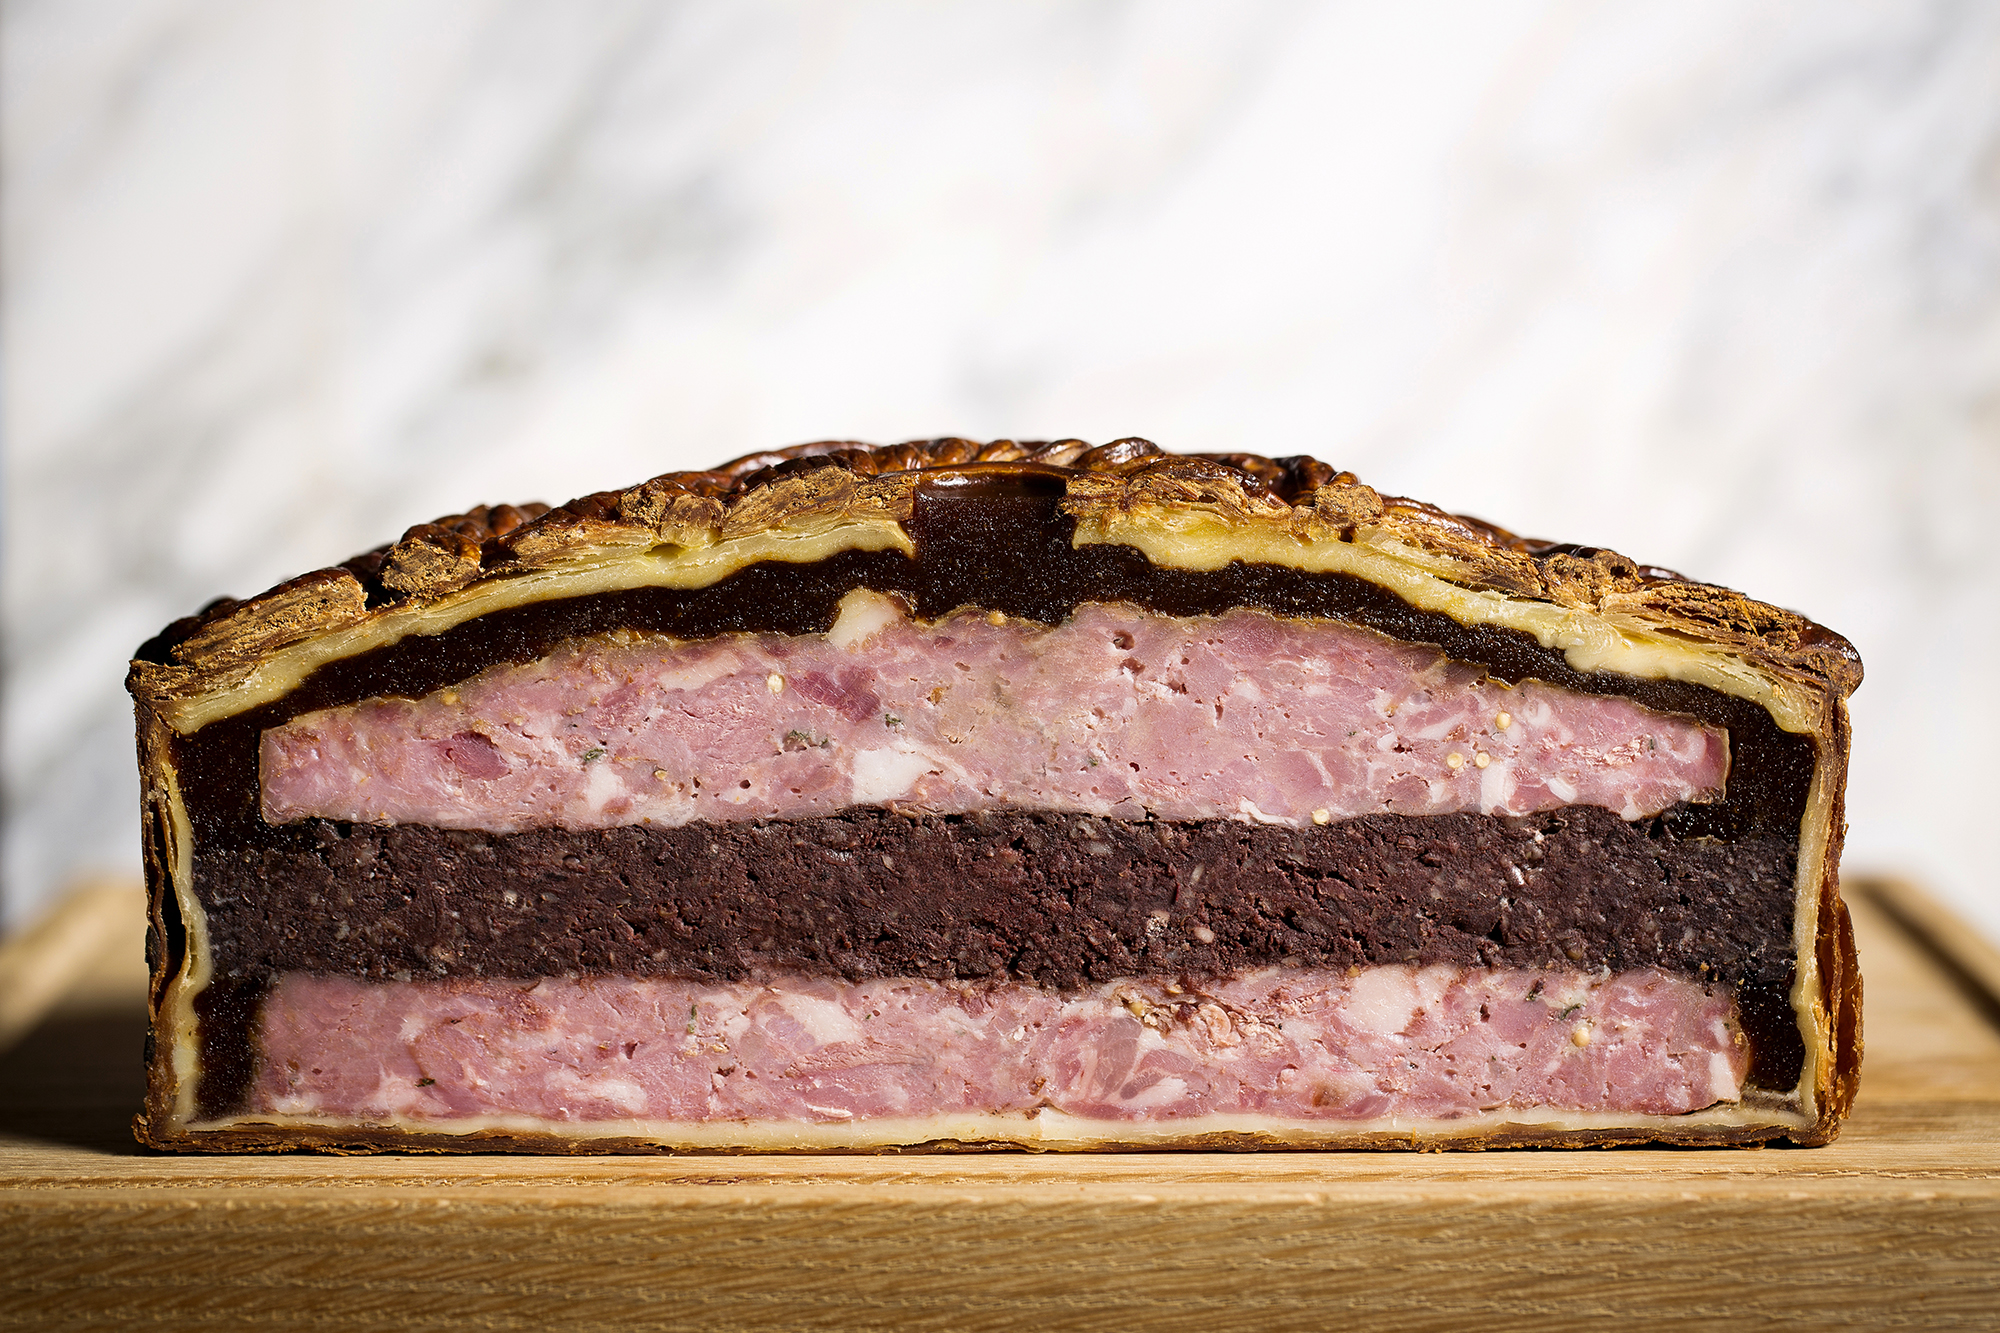 Calum Franklin's black pudding pie